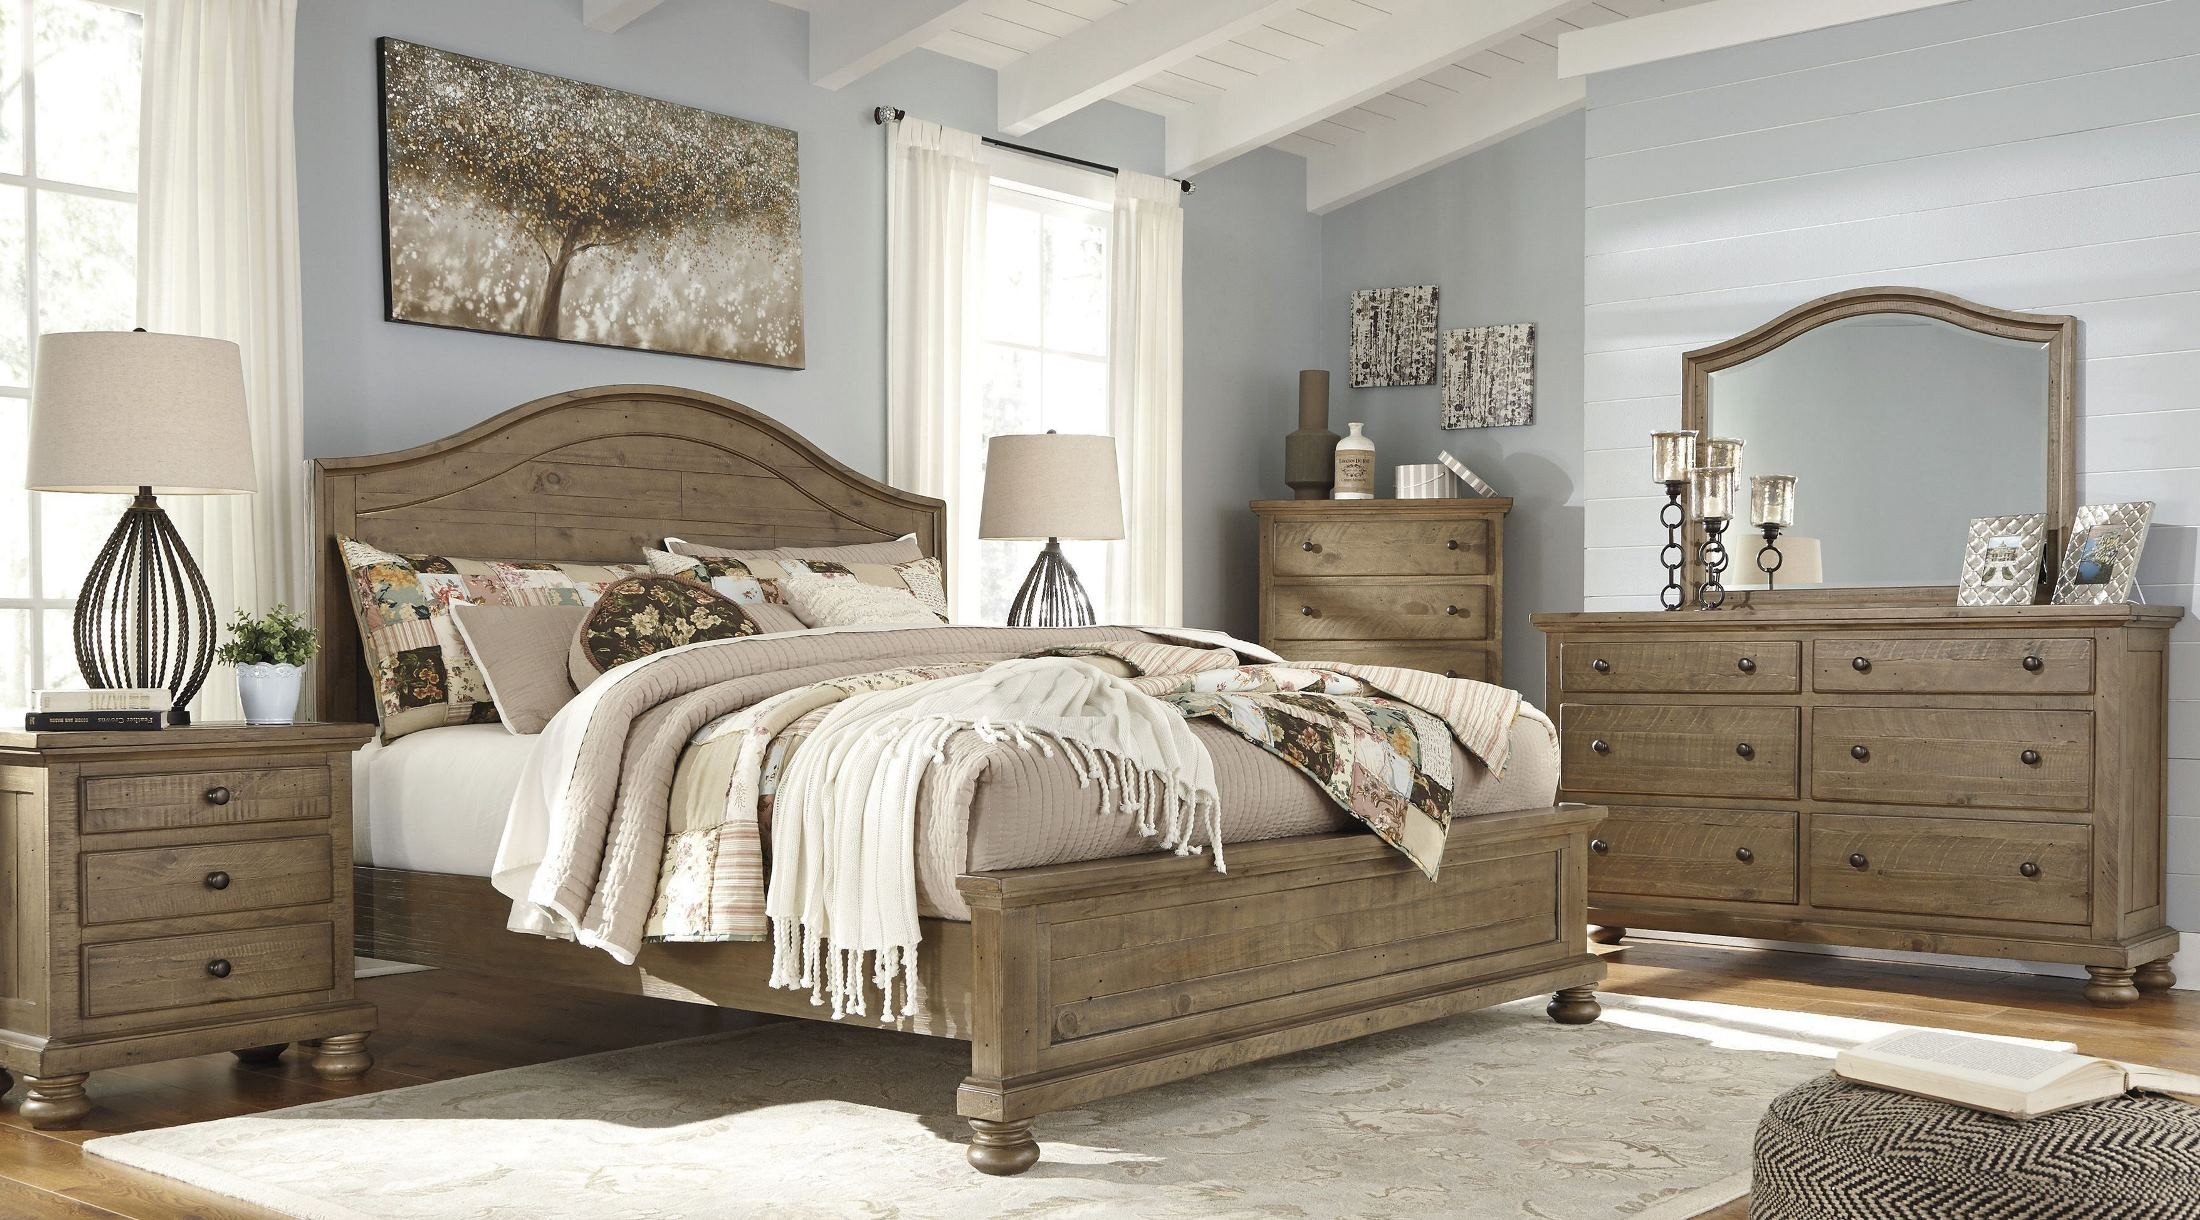 Trishley light brown panel bedroom set b659 57 54 96 ashley for Where to get bedroom furniture